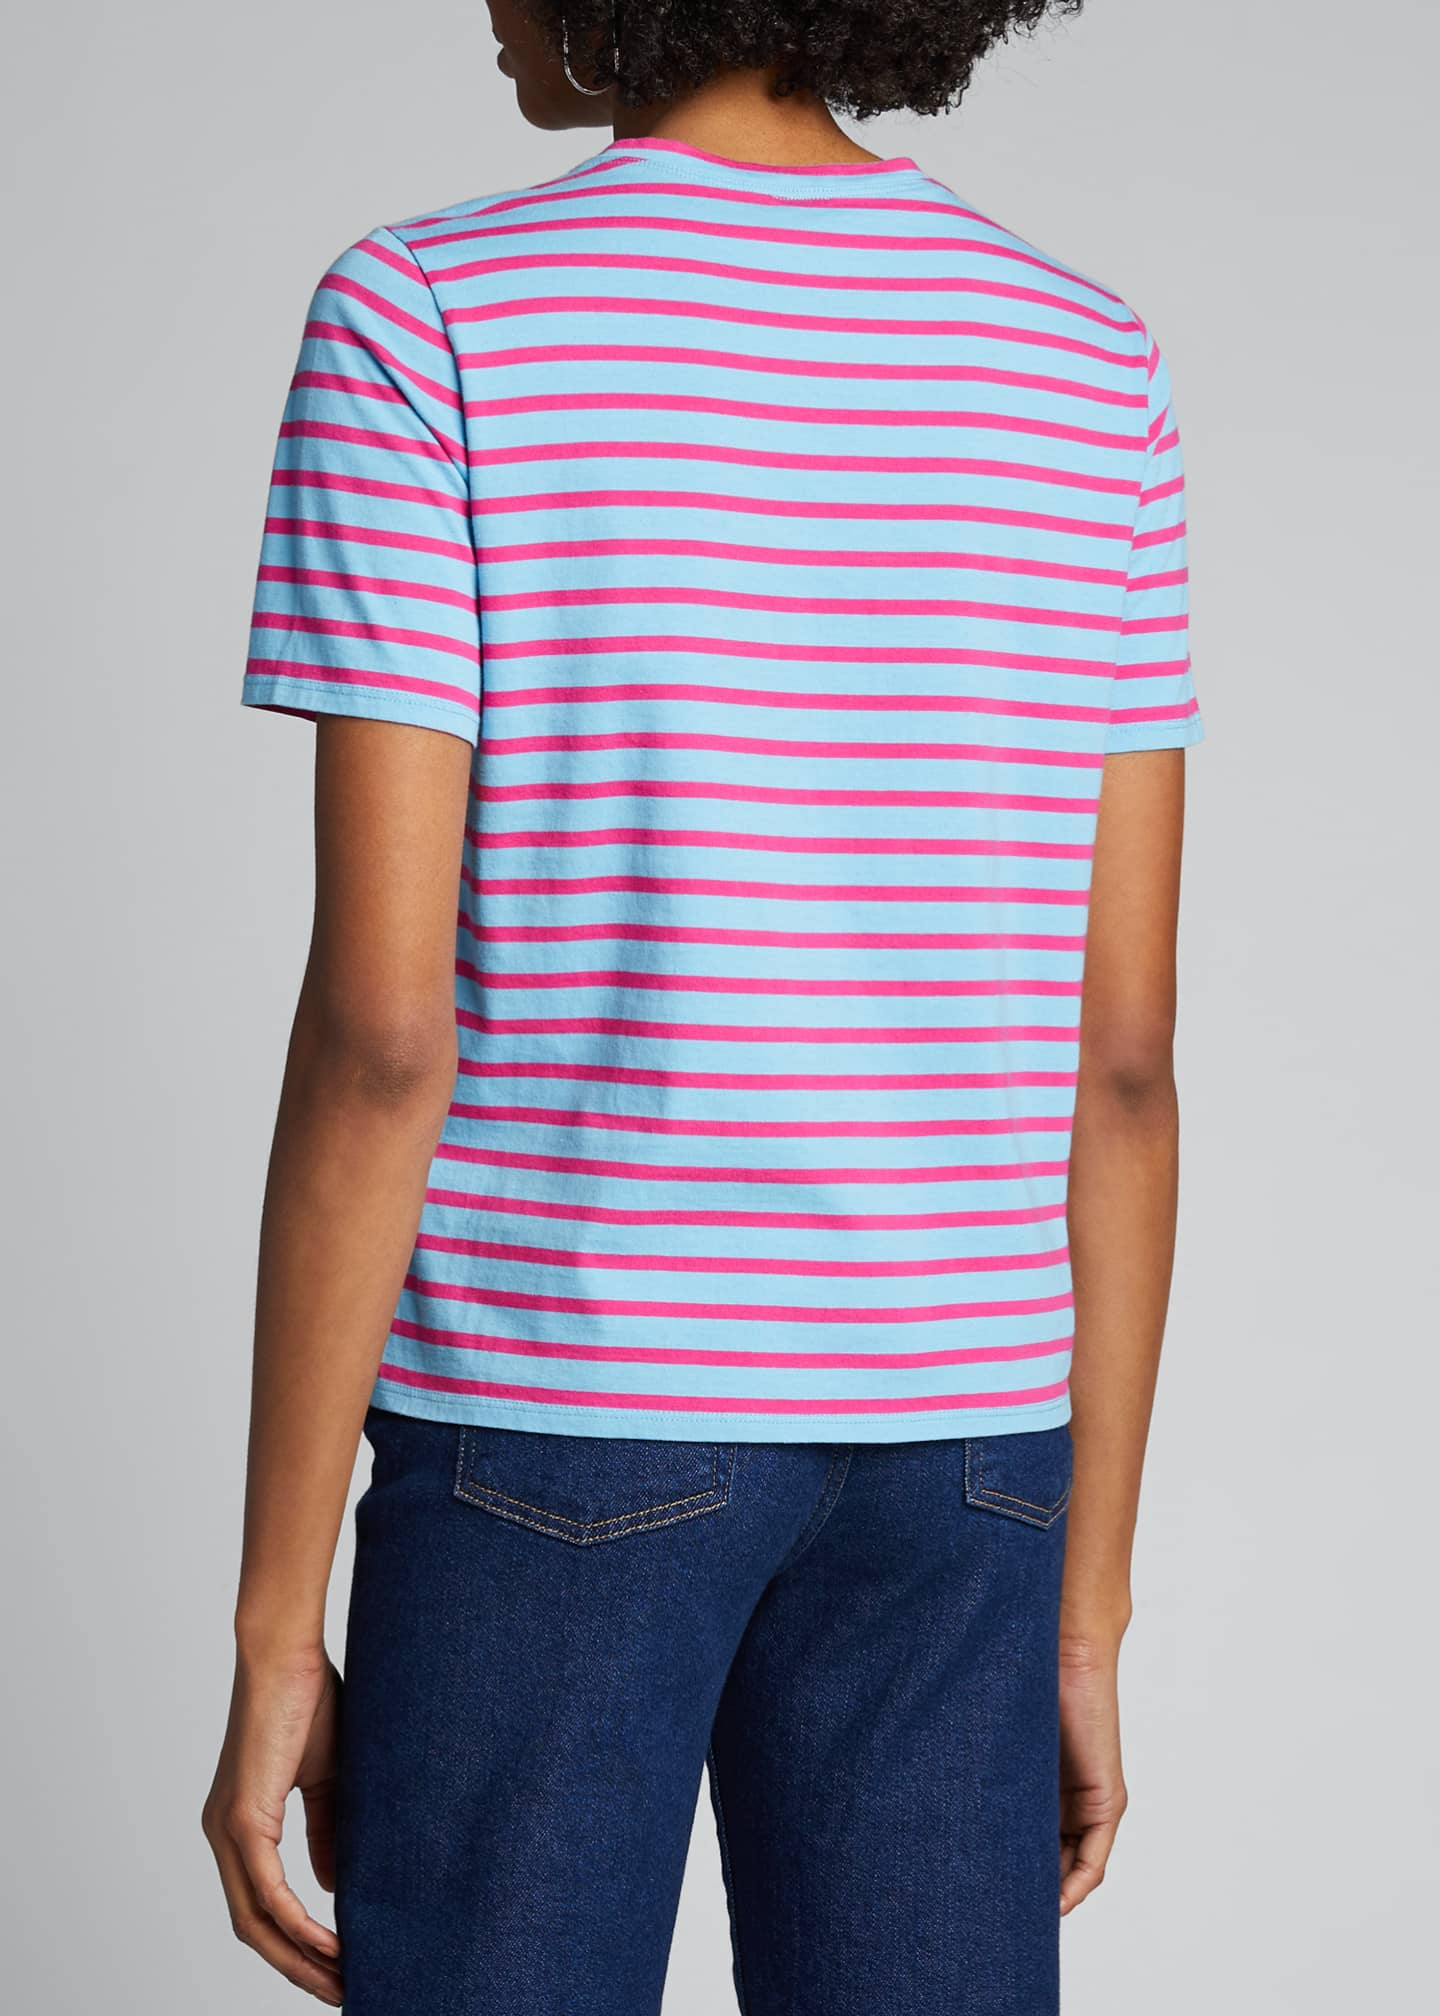 Image 2 of 5: The Modern Short-Sleeve Striped Top